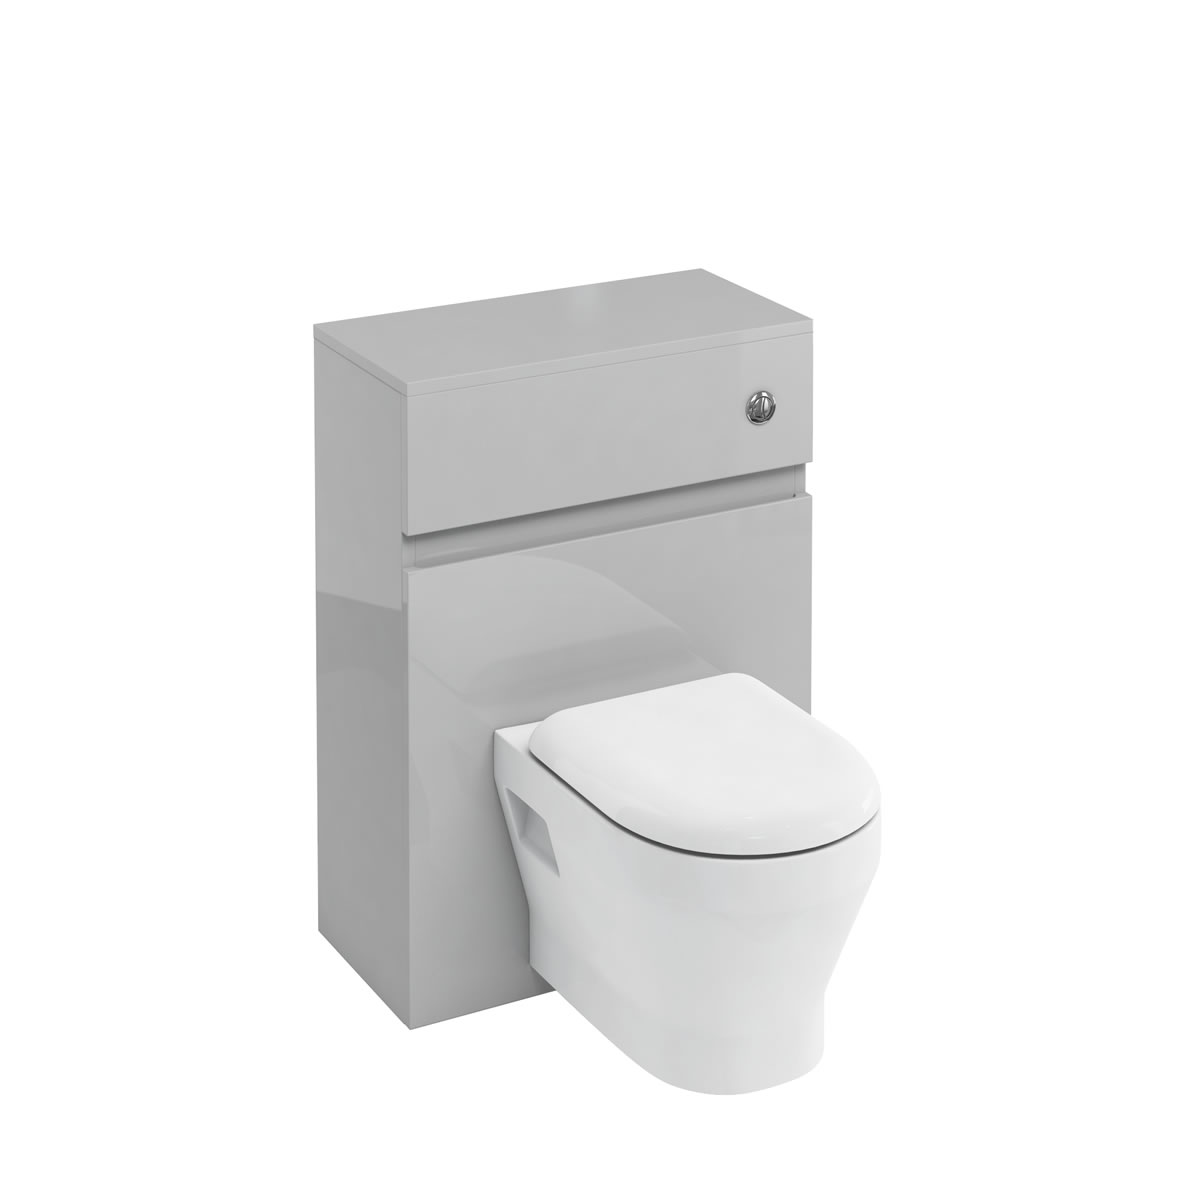 D30 wall hung WC unit with push button - light grey